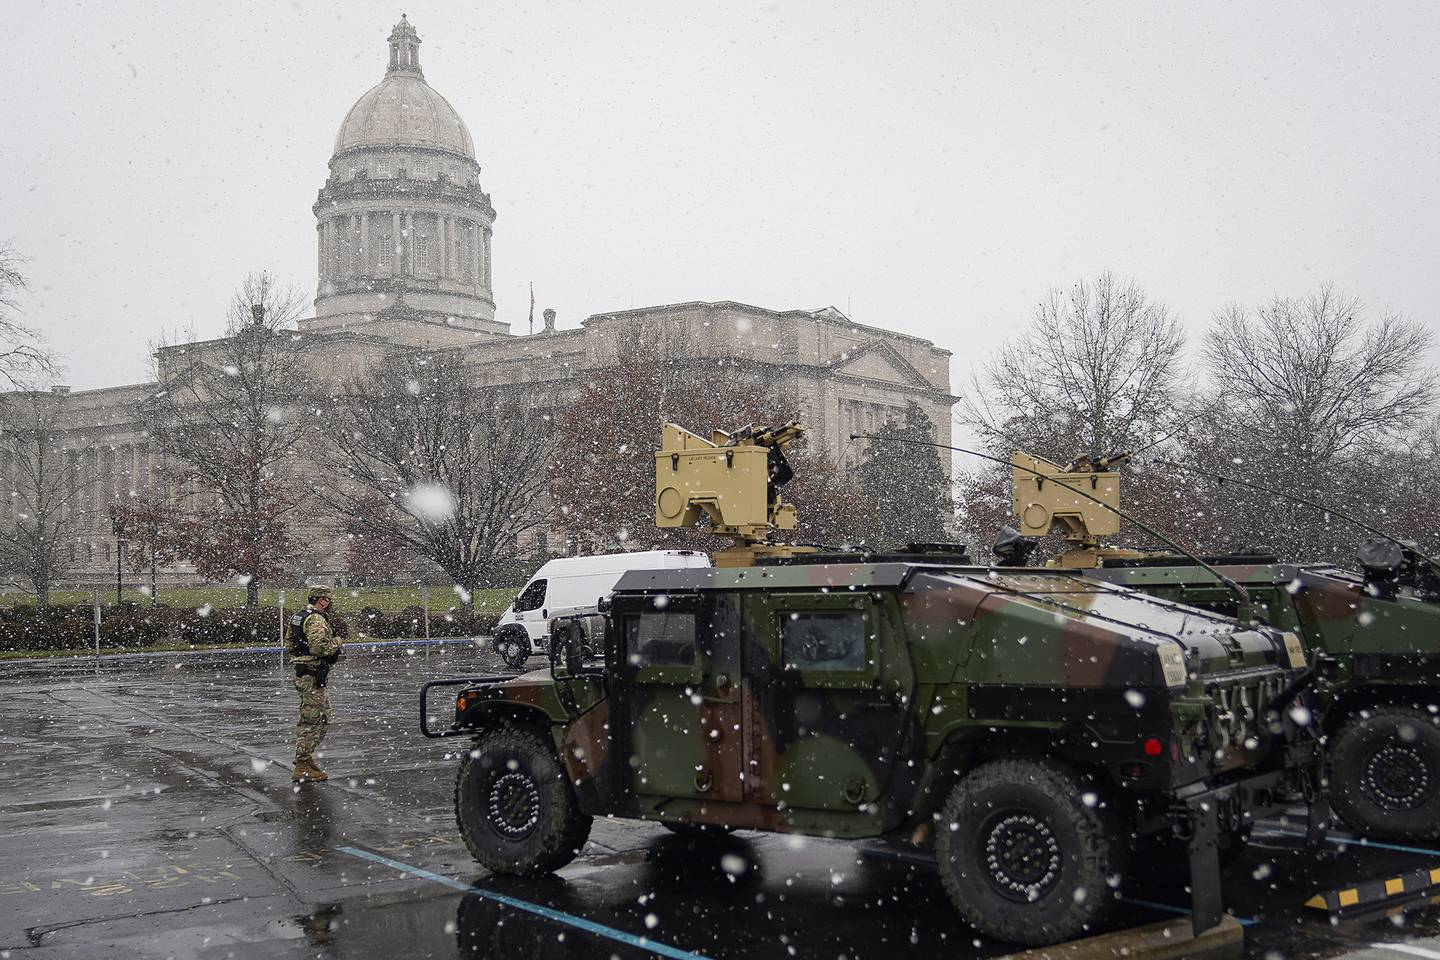 A National Guard soldier stands outside the Capitol building in Frankfort, Ky., Sunday, Jan. 17, 2021.